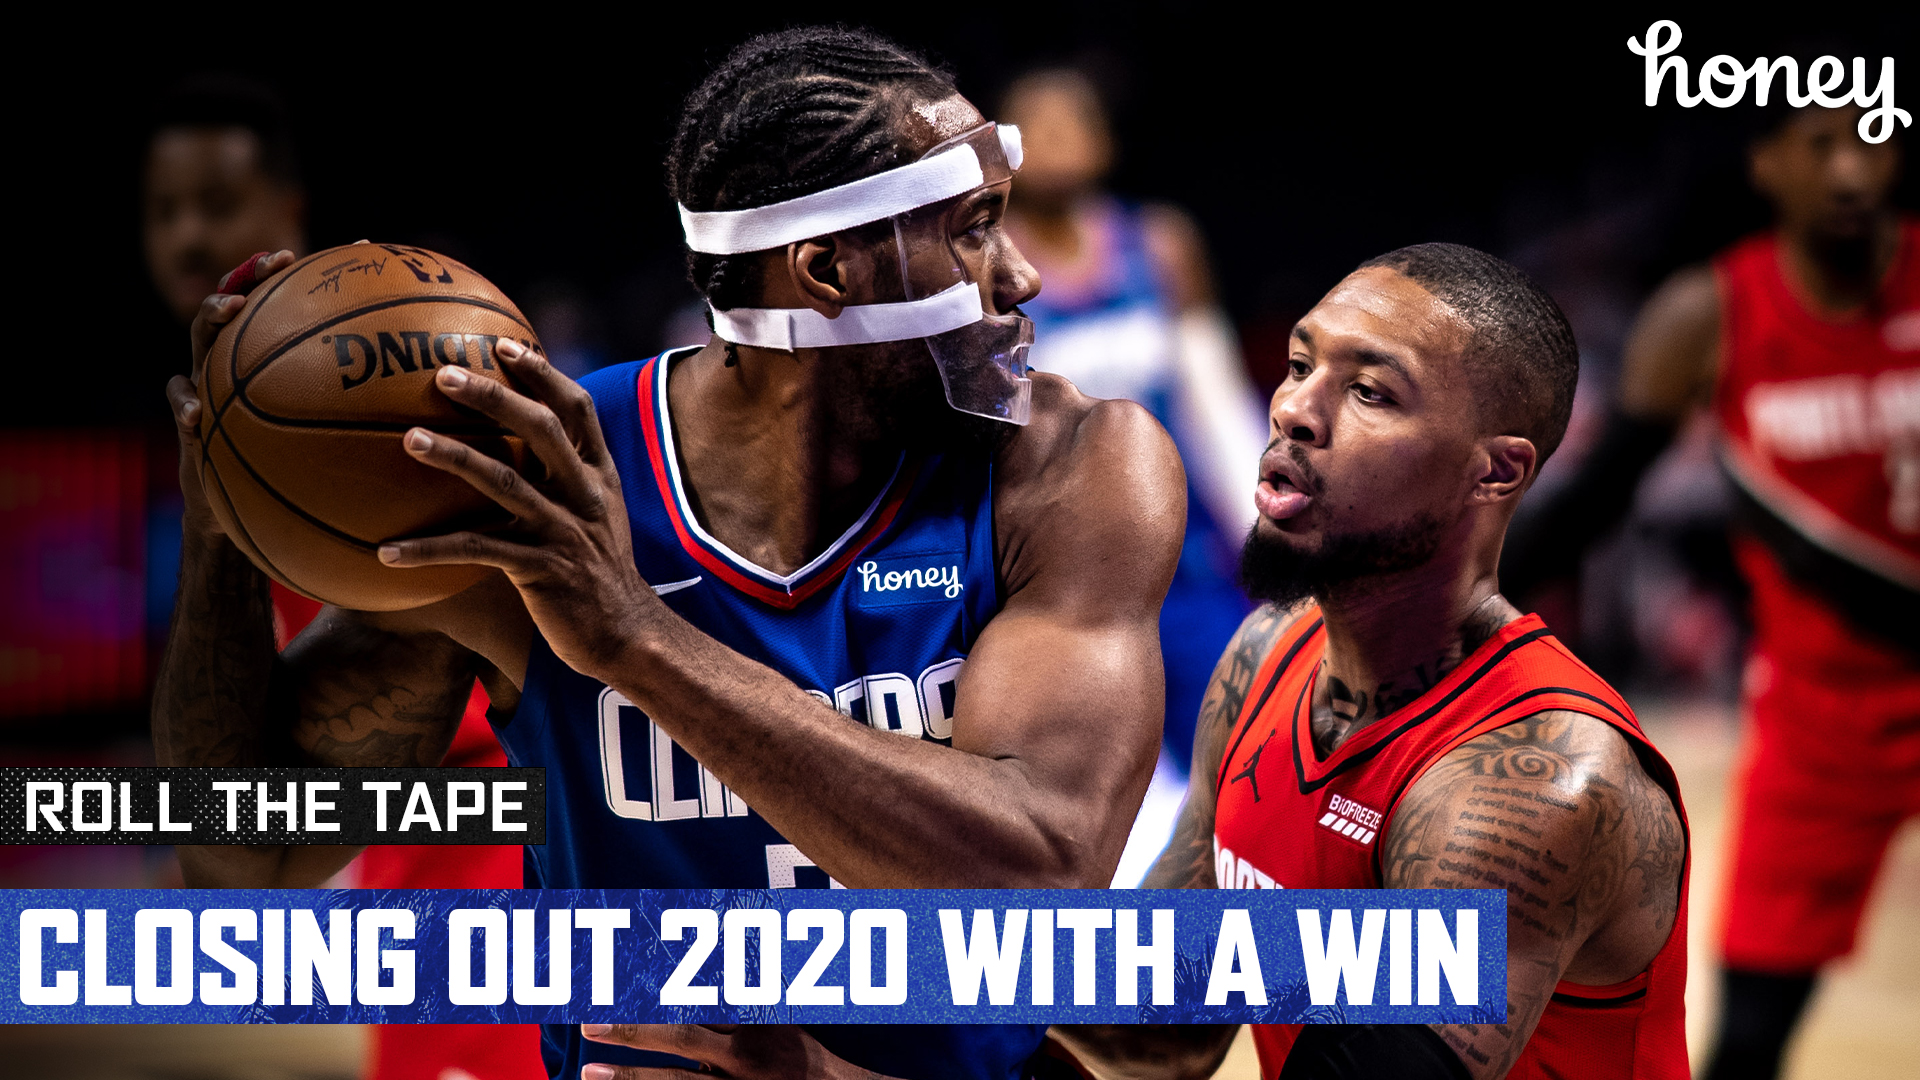 Roll The Tape | Closing Out 2020 With A Win